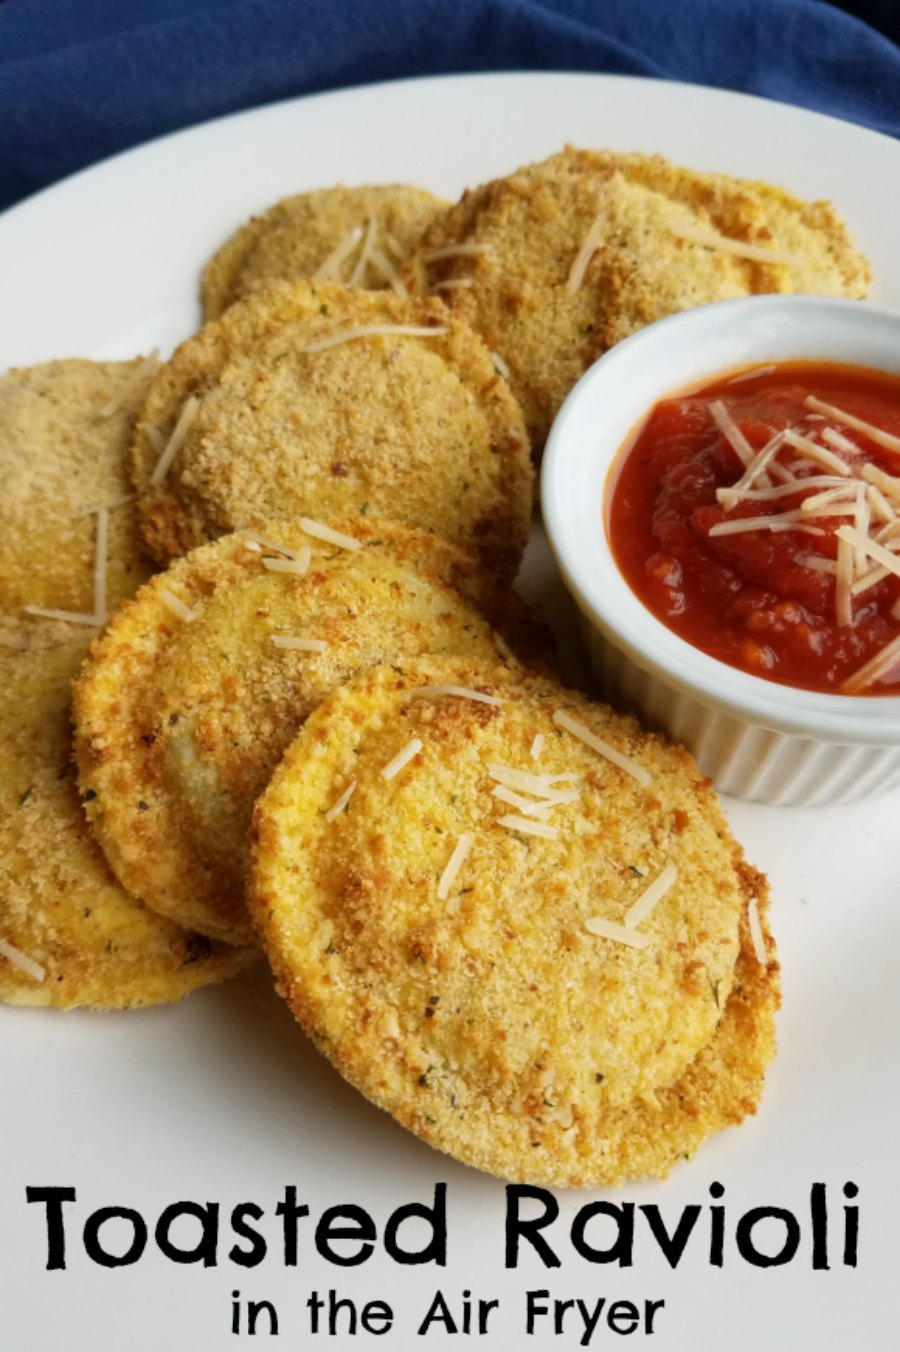 Have you ever had toasted ravioli? They are a classic in the St. Louis area, so naturally being located so close we are familiar with them as well. Get those golden crispy appetizers at home without the mess or smell of frying. Make them in an air fryer instead!